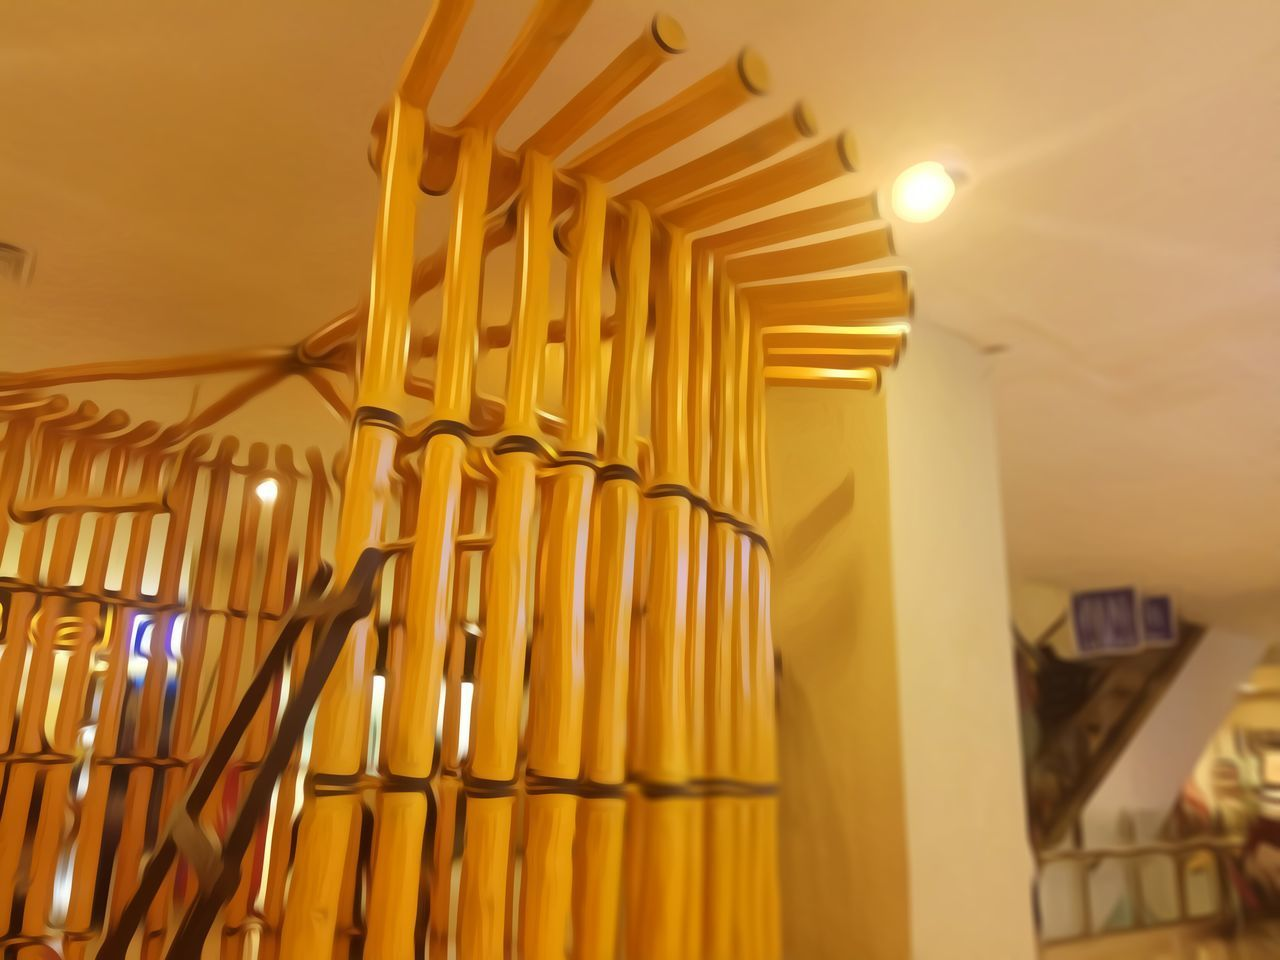 No People Night Luxury Modern Bamboo Shoots Bamboodesign Bamboo Art Yellow Indoors  Built Structure Low Angle View Architecture